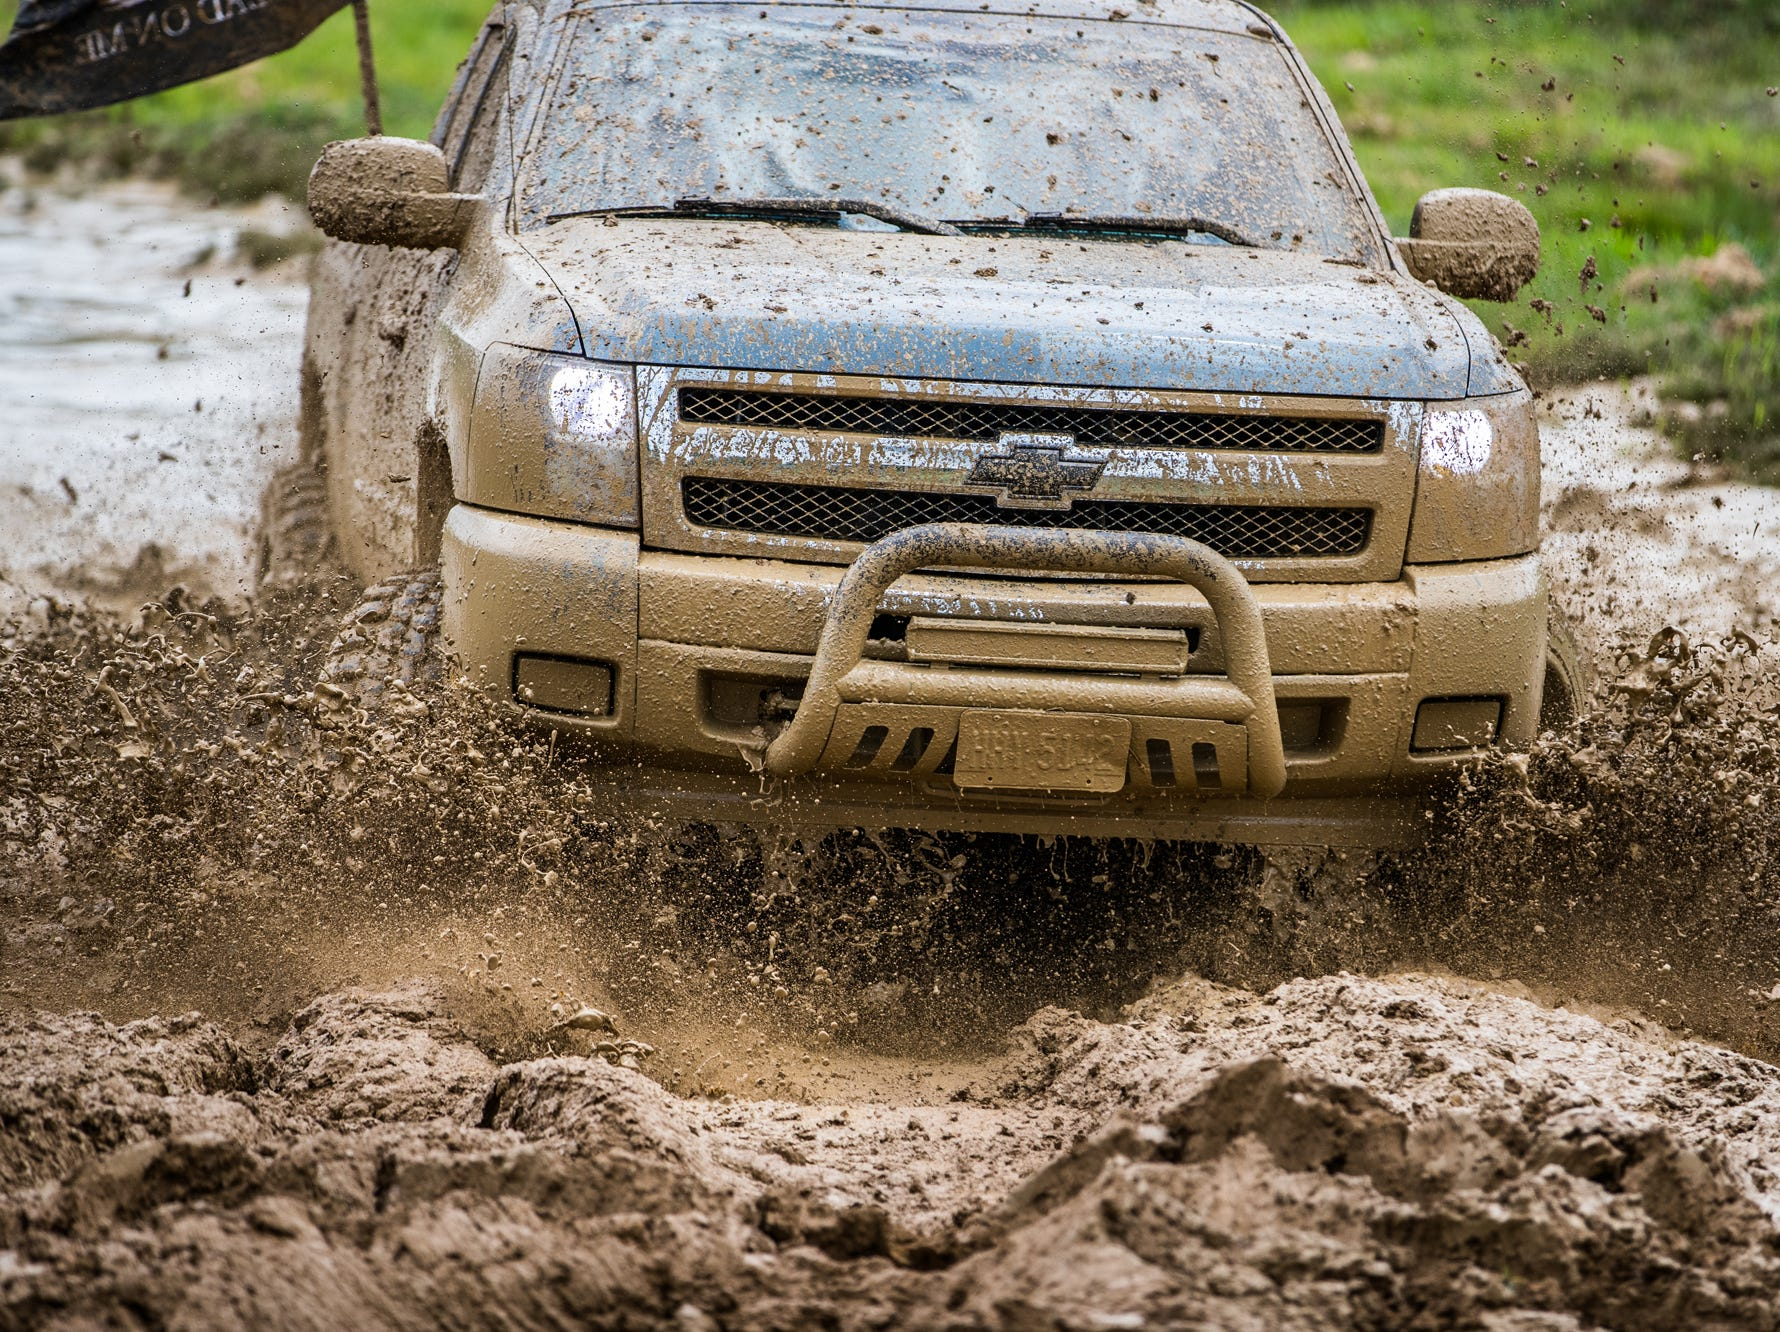 A Chevrolet  truck trudges through the mud during the Redneck Rave at BlackSwan Mudpit in Medora, Ind., on Friday, July 20, 2018.